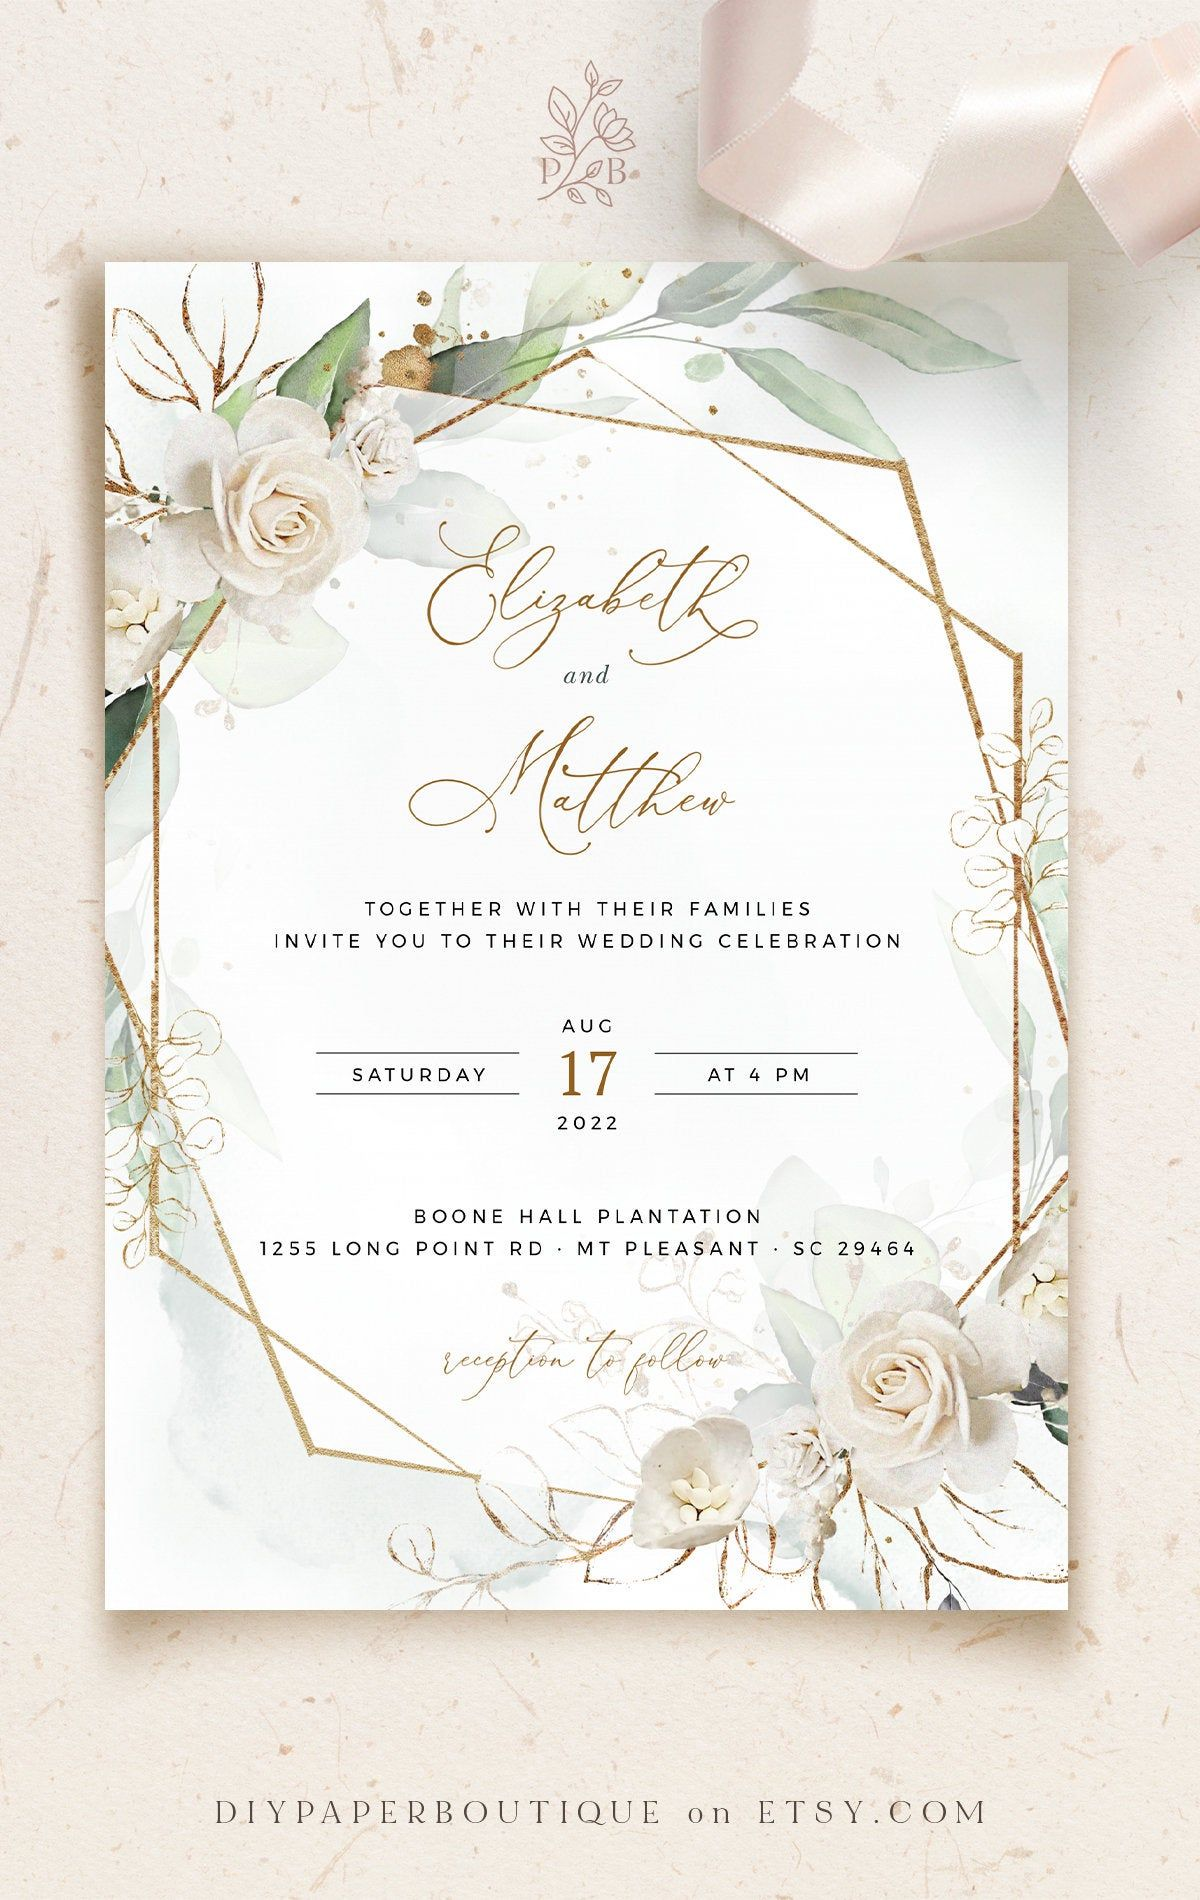 Marci Geometric Wedding Invitation Template White Rose Faux Etsy In 2020 Geometric Wedding Invitation Digital Wedding Invitations Design Digital Wedding Invitations